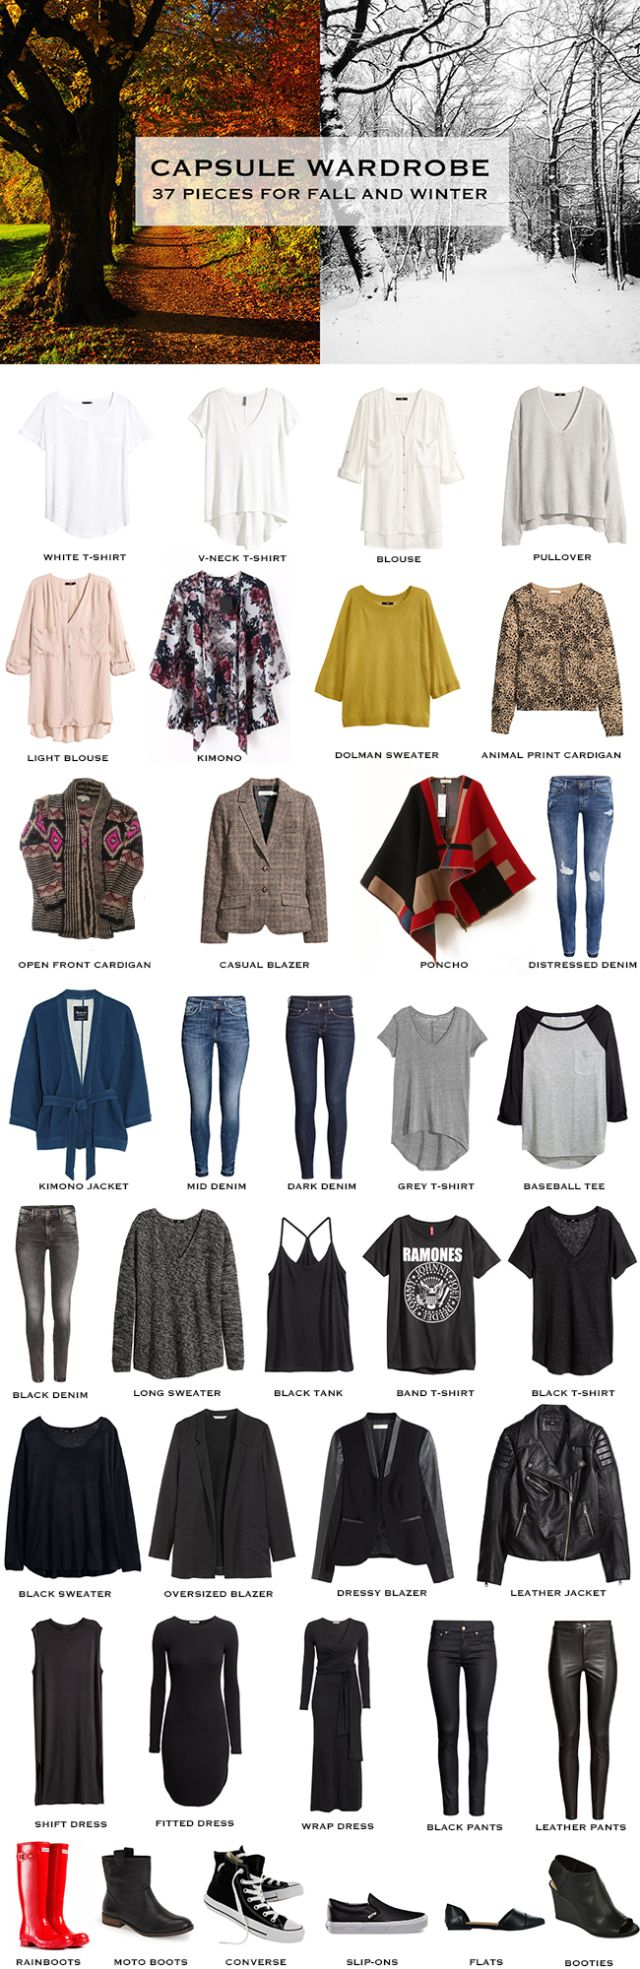 Fall Winter Capsule Wardrobe2